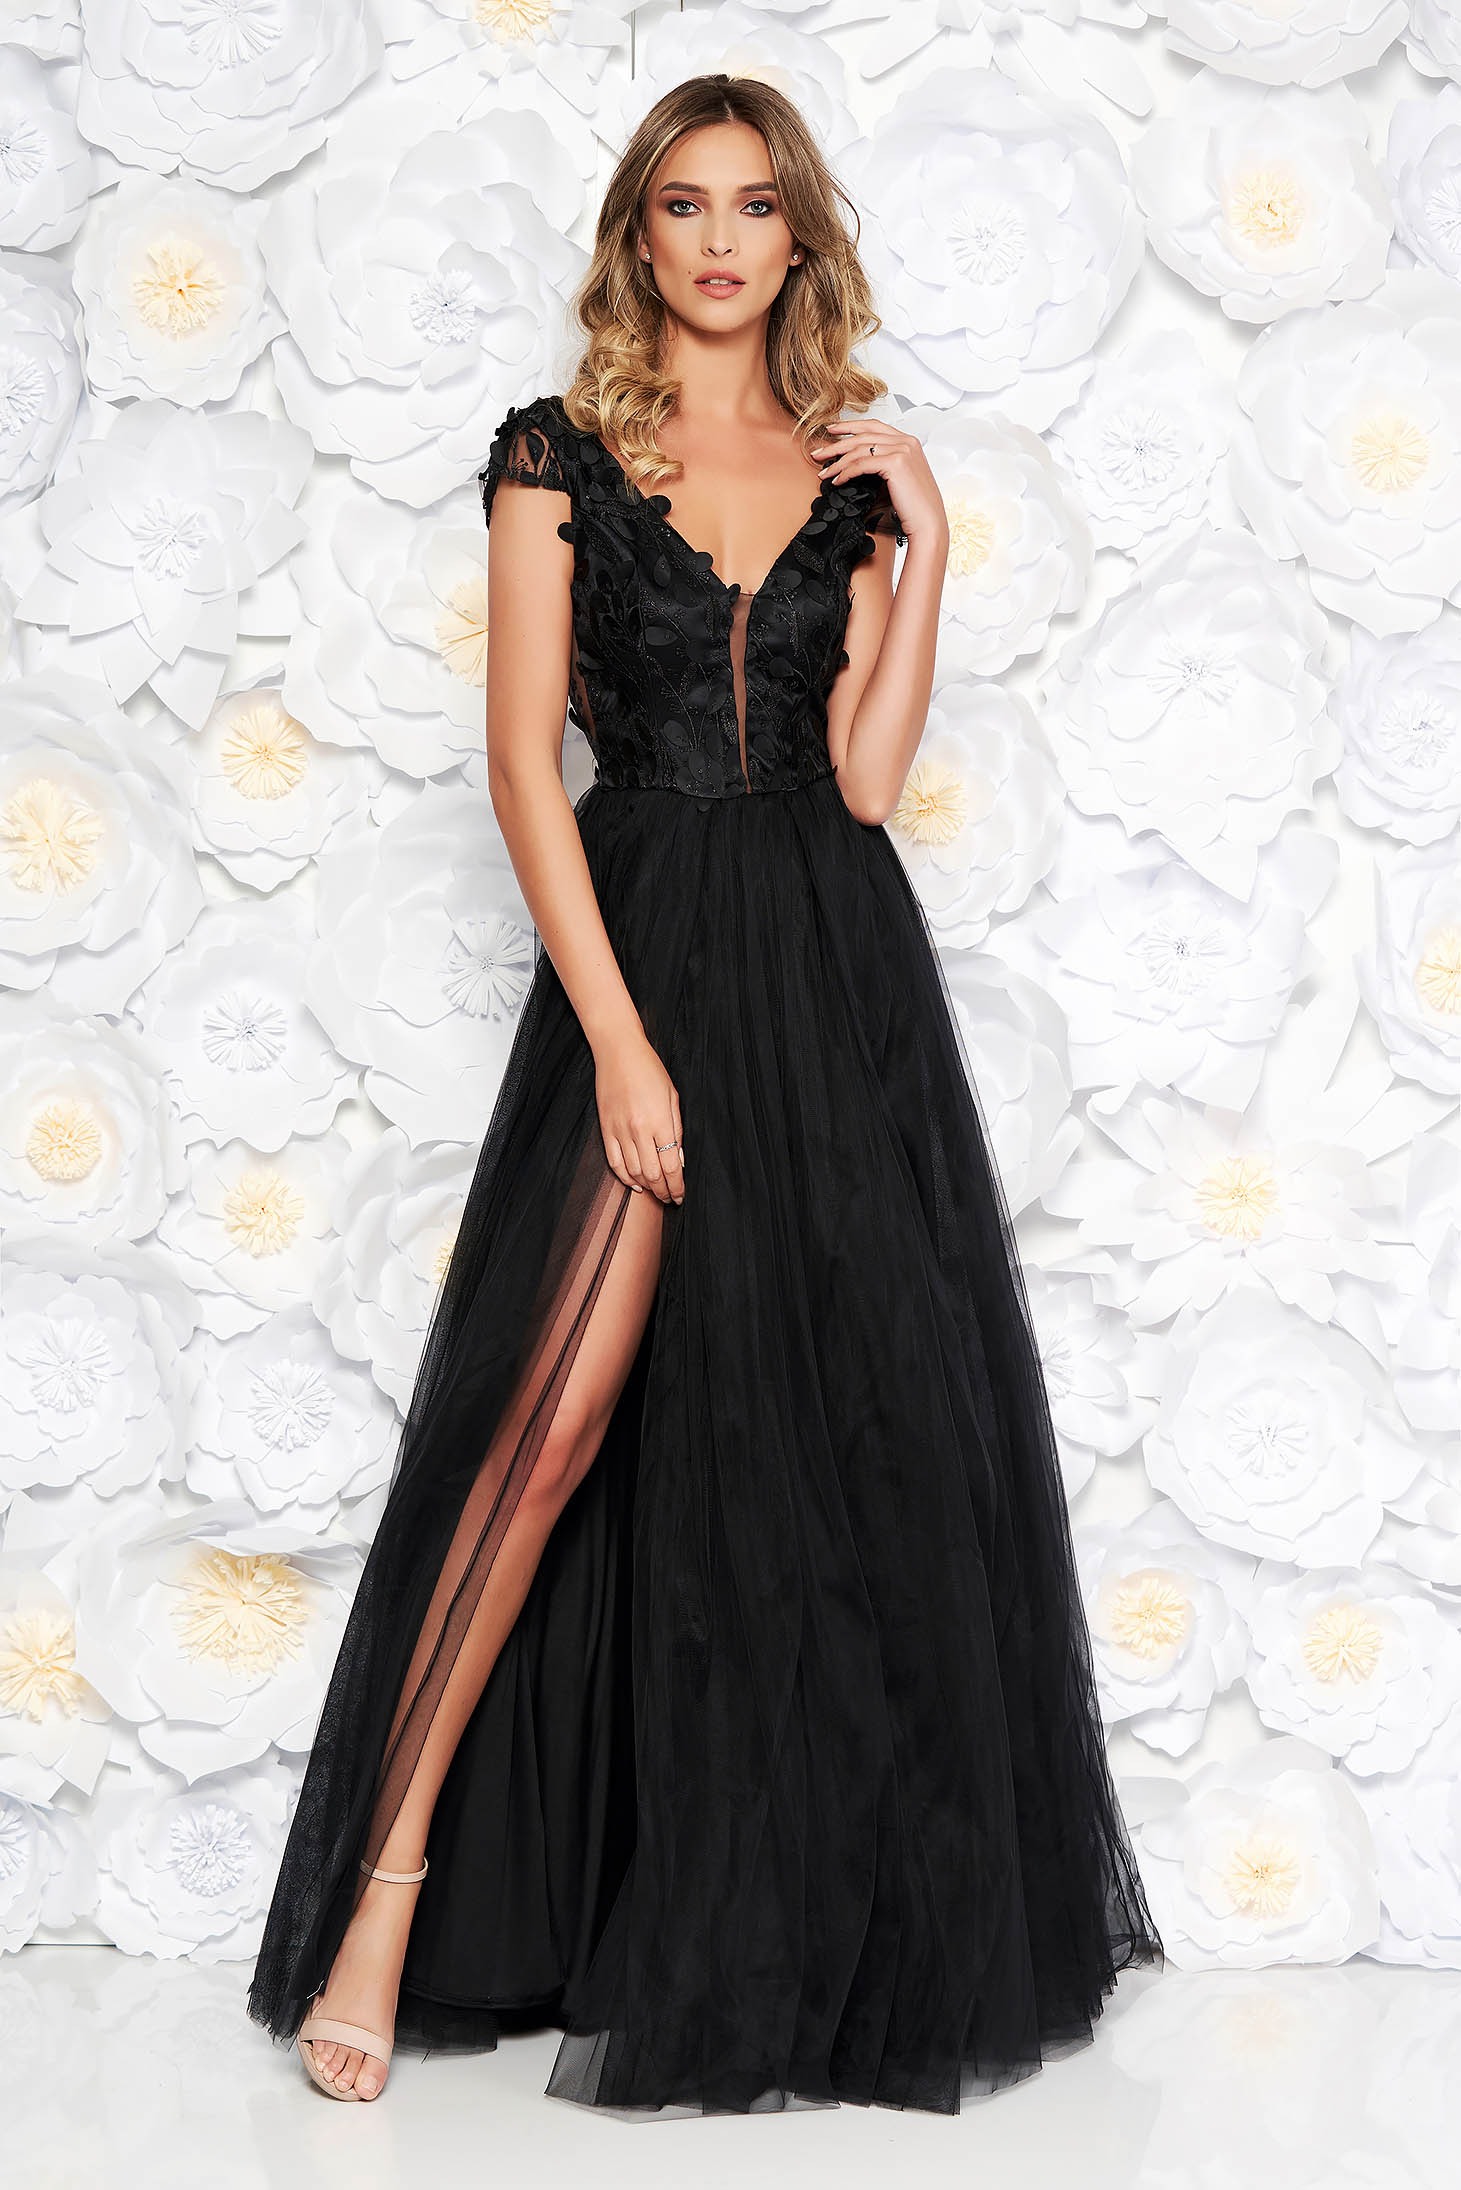 Artista black occasional cloche dress from tulle laced with push-up cups with floral details with 3d effect